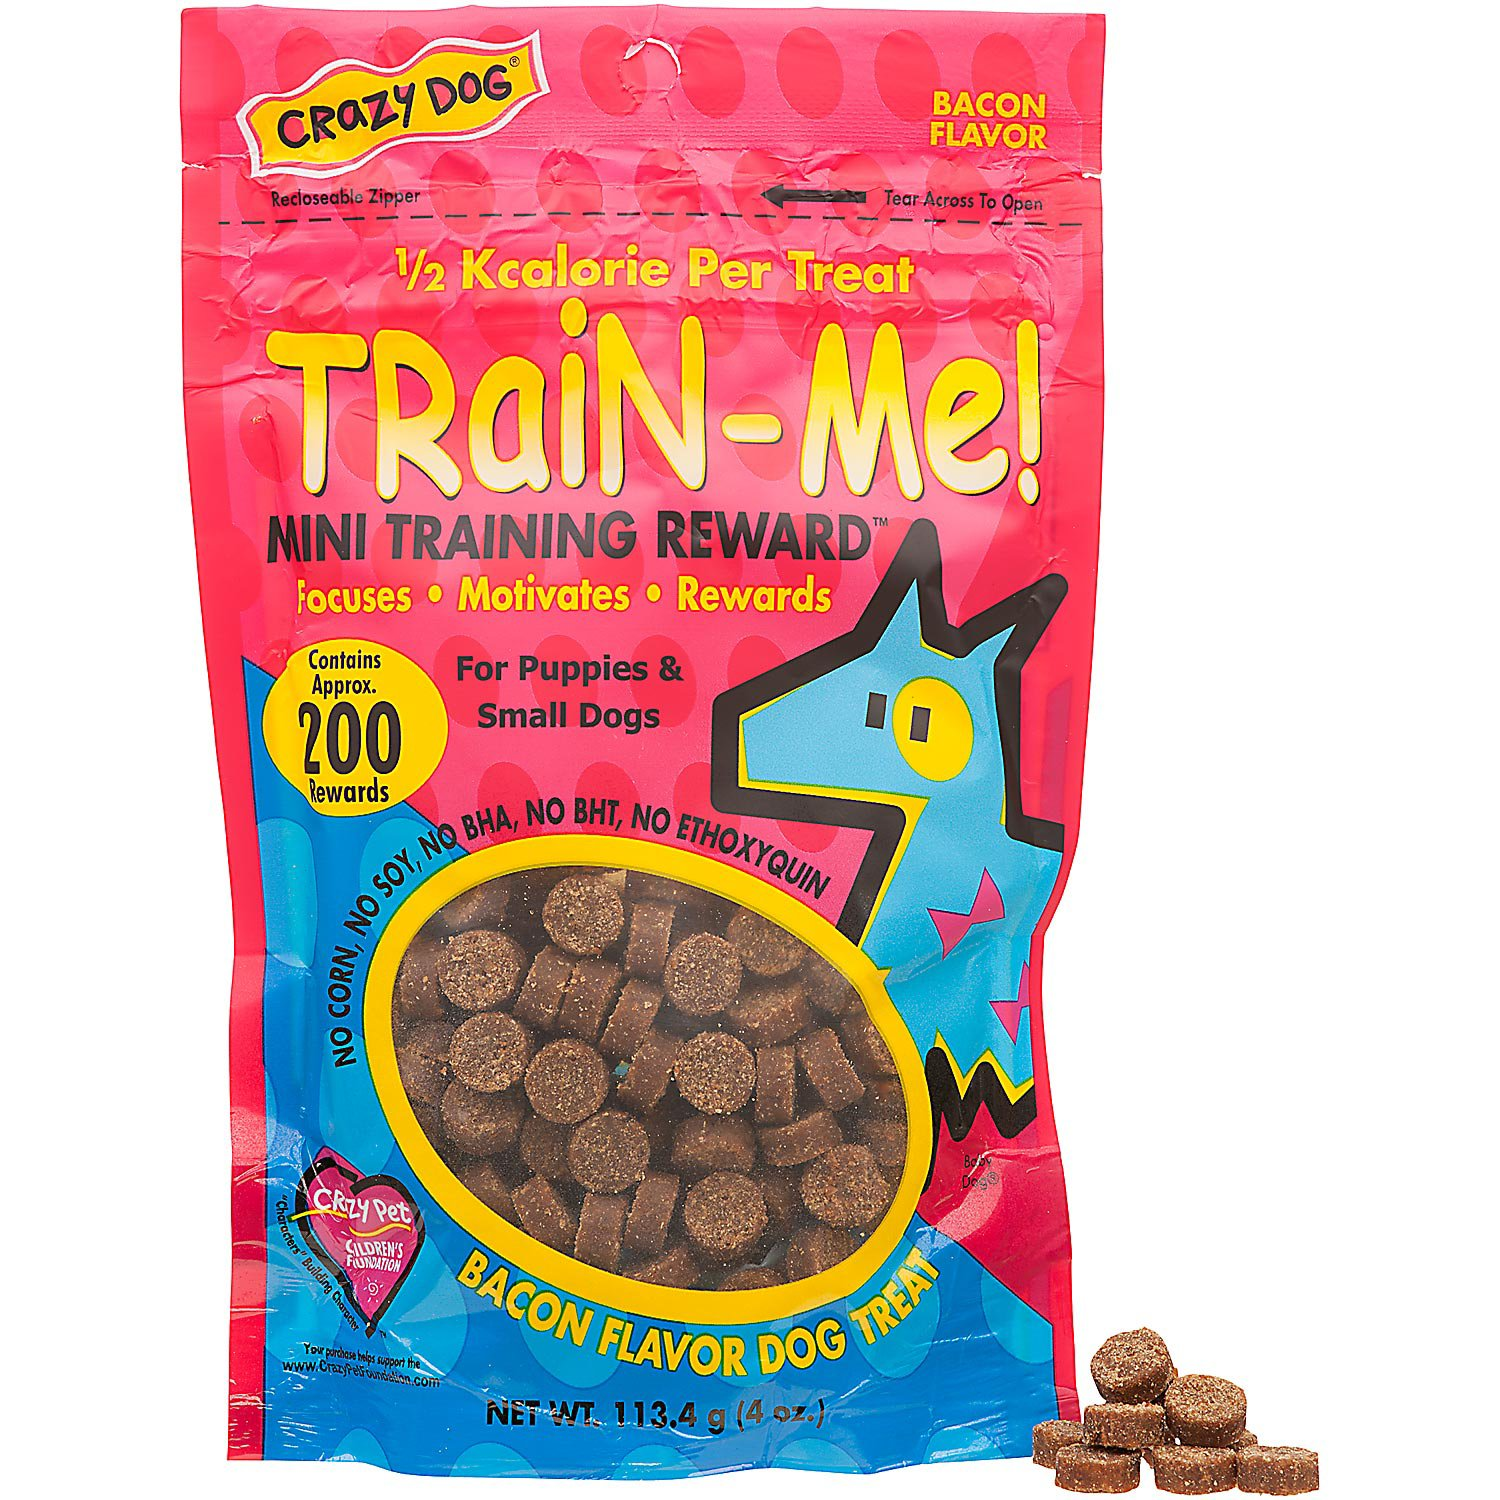 Crazy Dog Train-Me Mini Training Reward Dog Treats